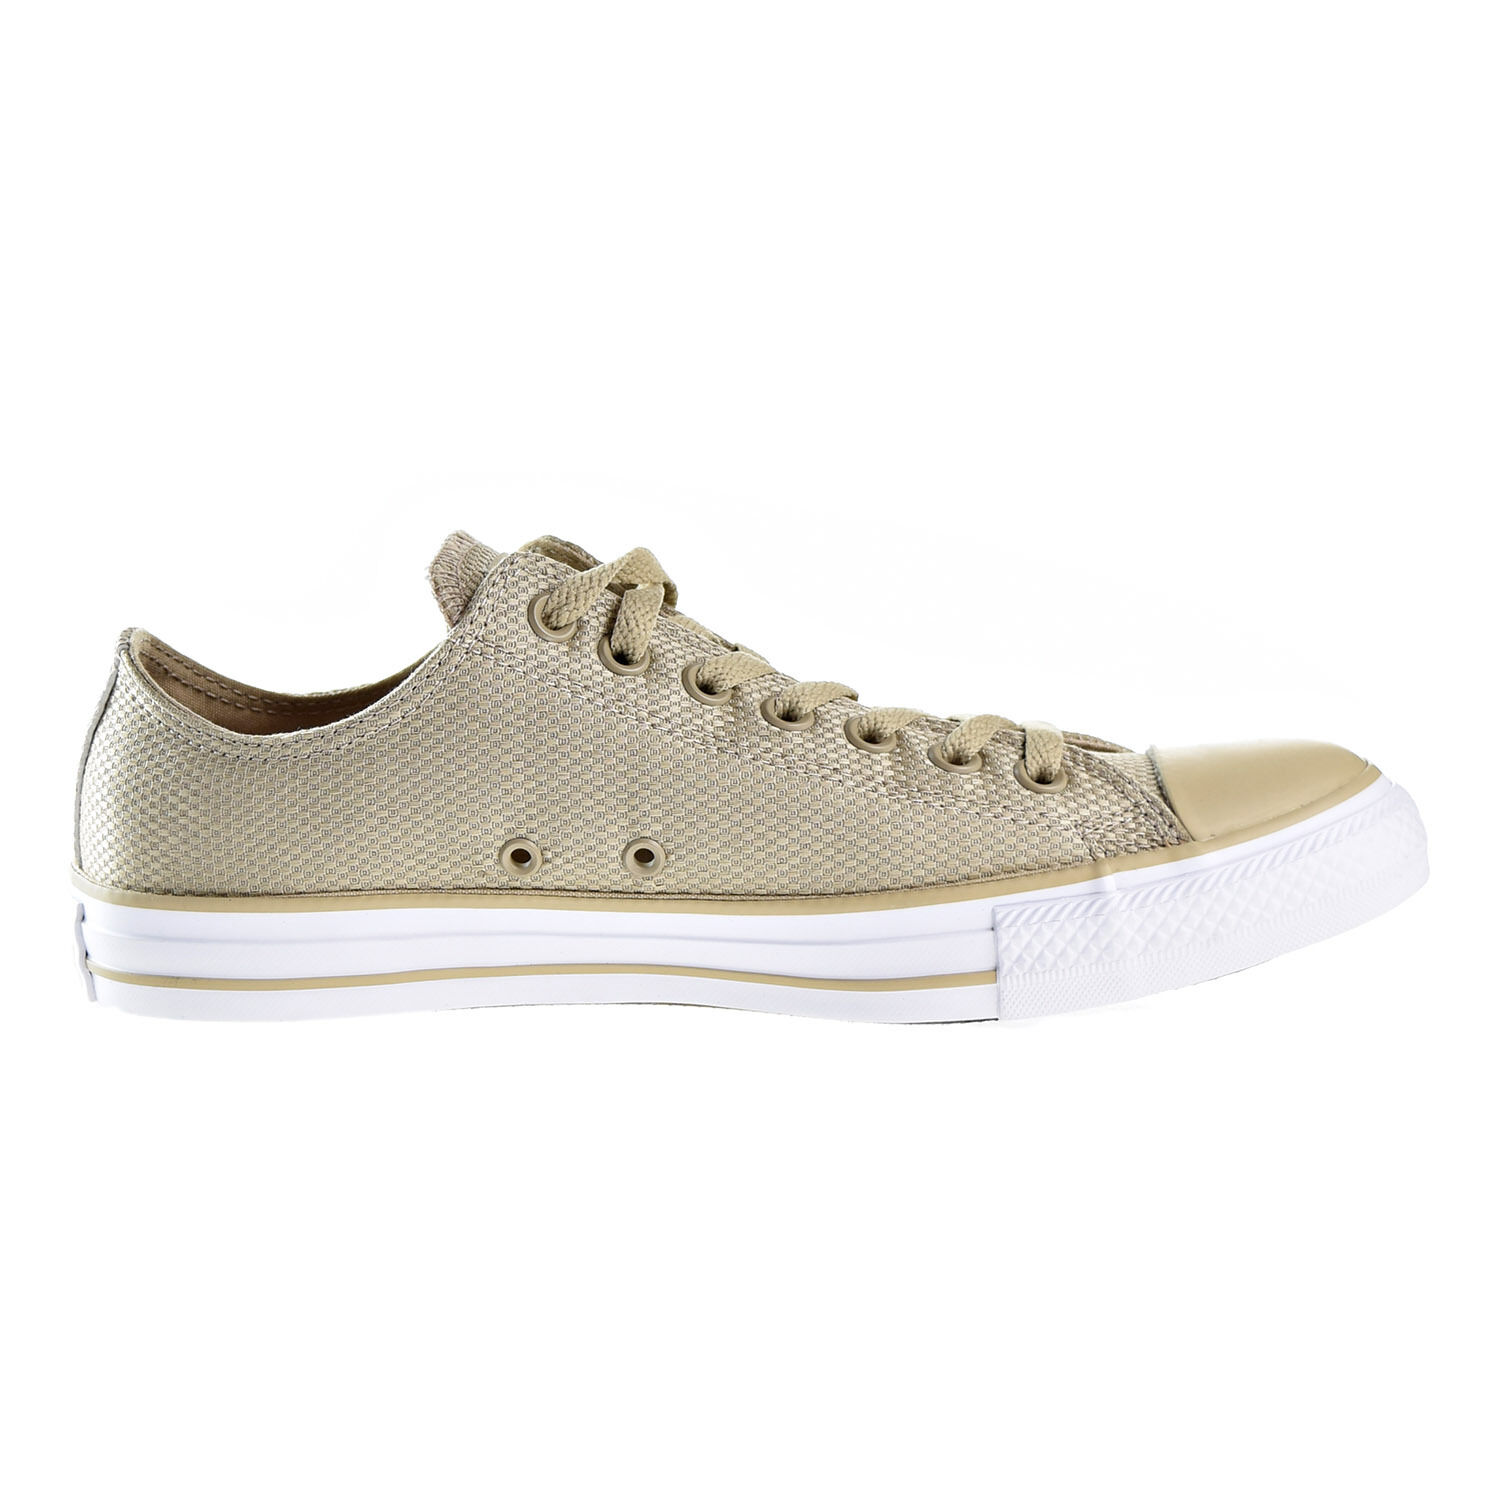 Converse Chuck Taylor All Star OX Unisex shoes Vintage Khaki White Brown 155419f